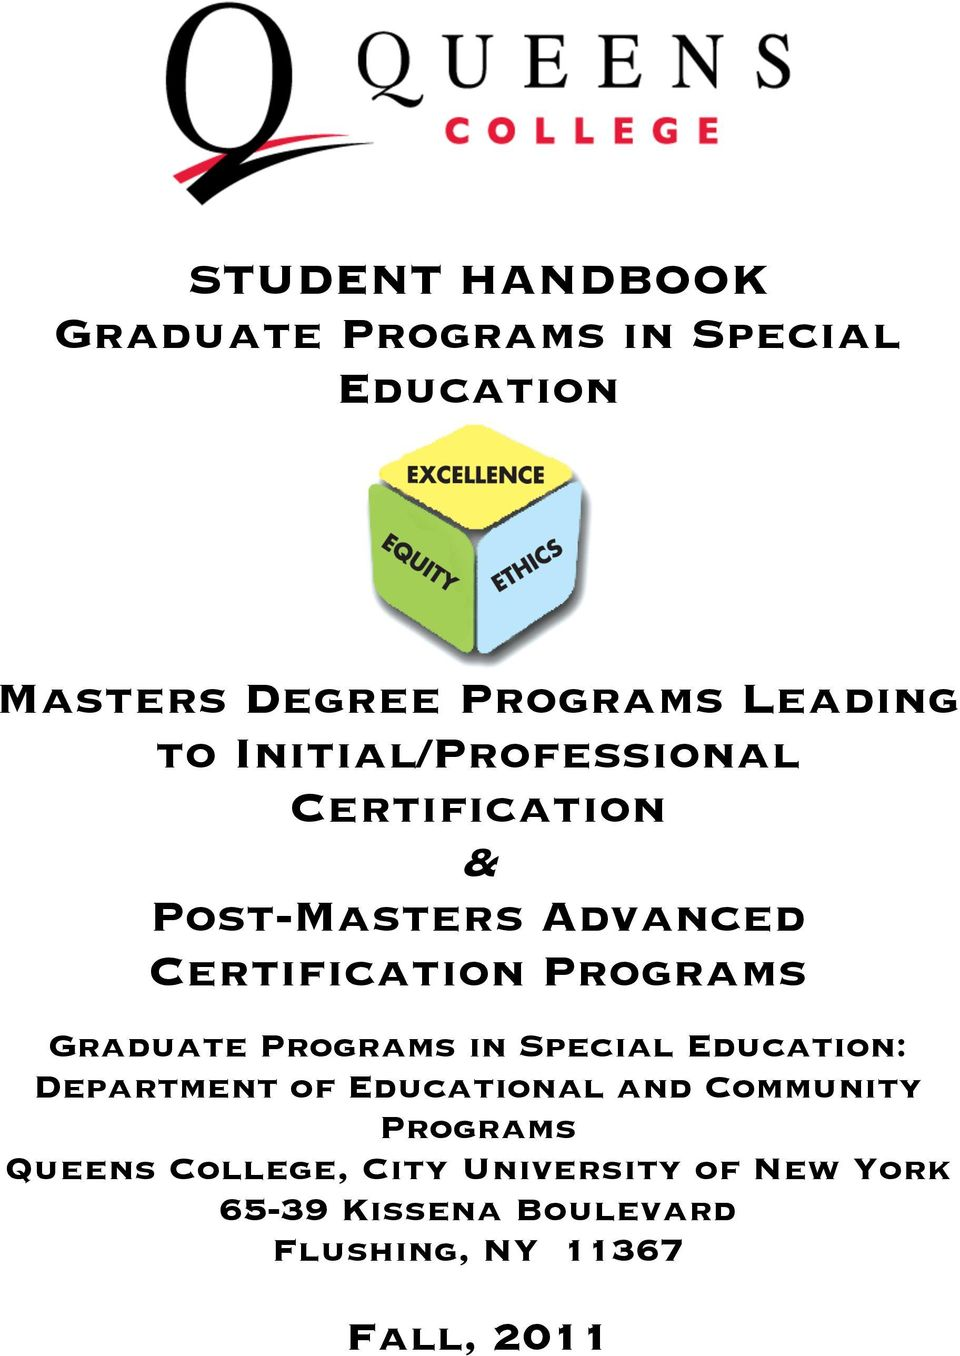 Graduate Programs in Special Education: Department of Educational and Community Programs